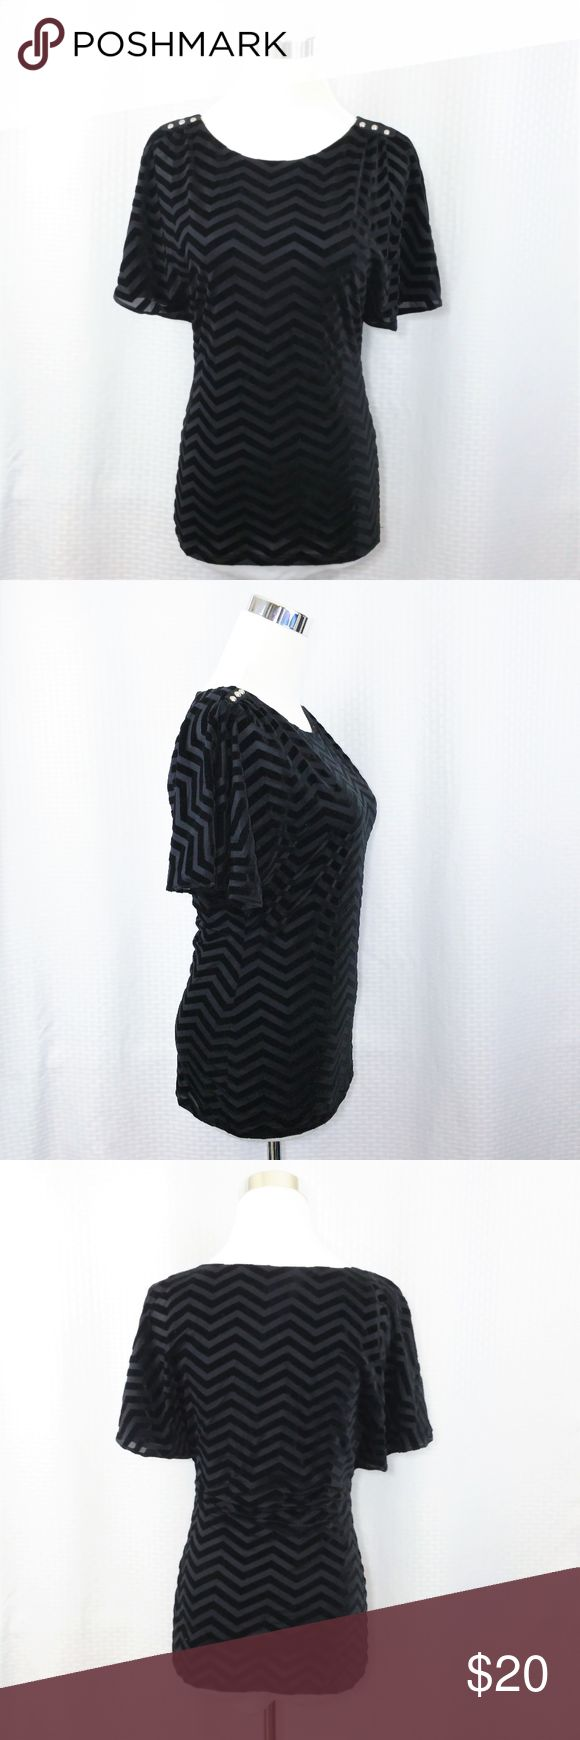 WHBM XS Black Velvet Chevron Blouse Batwing Top White House Black Market Top Womens XS Black Velvet Chevron Blouse Batwing  Condition: Excellent Pre-Owned Condition  Measurements When Laid Flat:   Armpit to Armpit: 17 inches across  Length: 24.5 inches long  Waist: 14 inches  Sleeve Length: 11 inches  Bottom Hem: 17 inches White House Black Market Tops Blouses